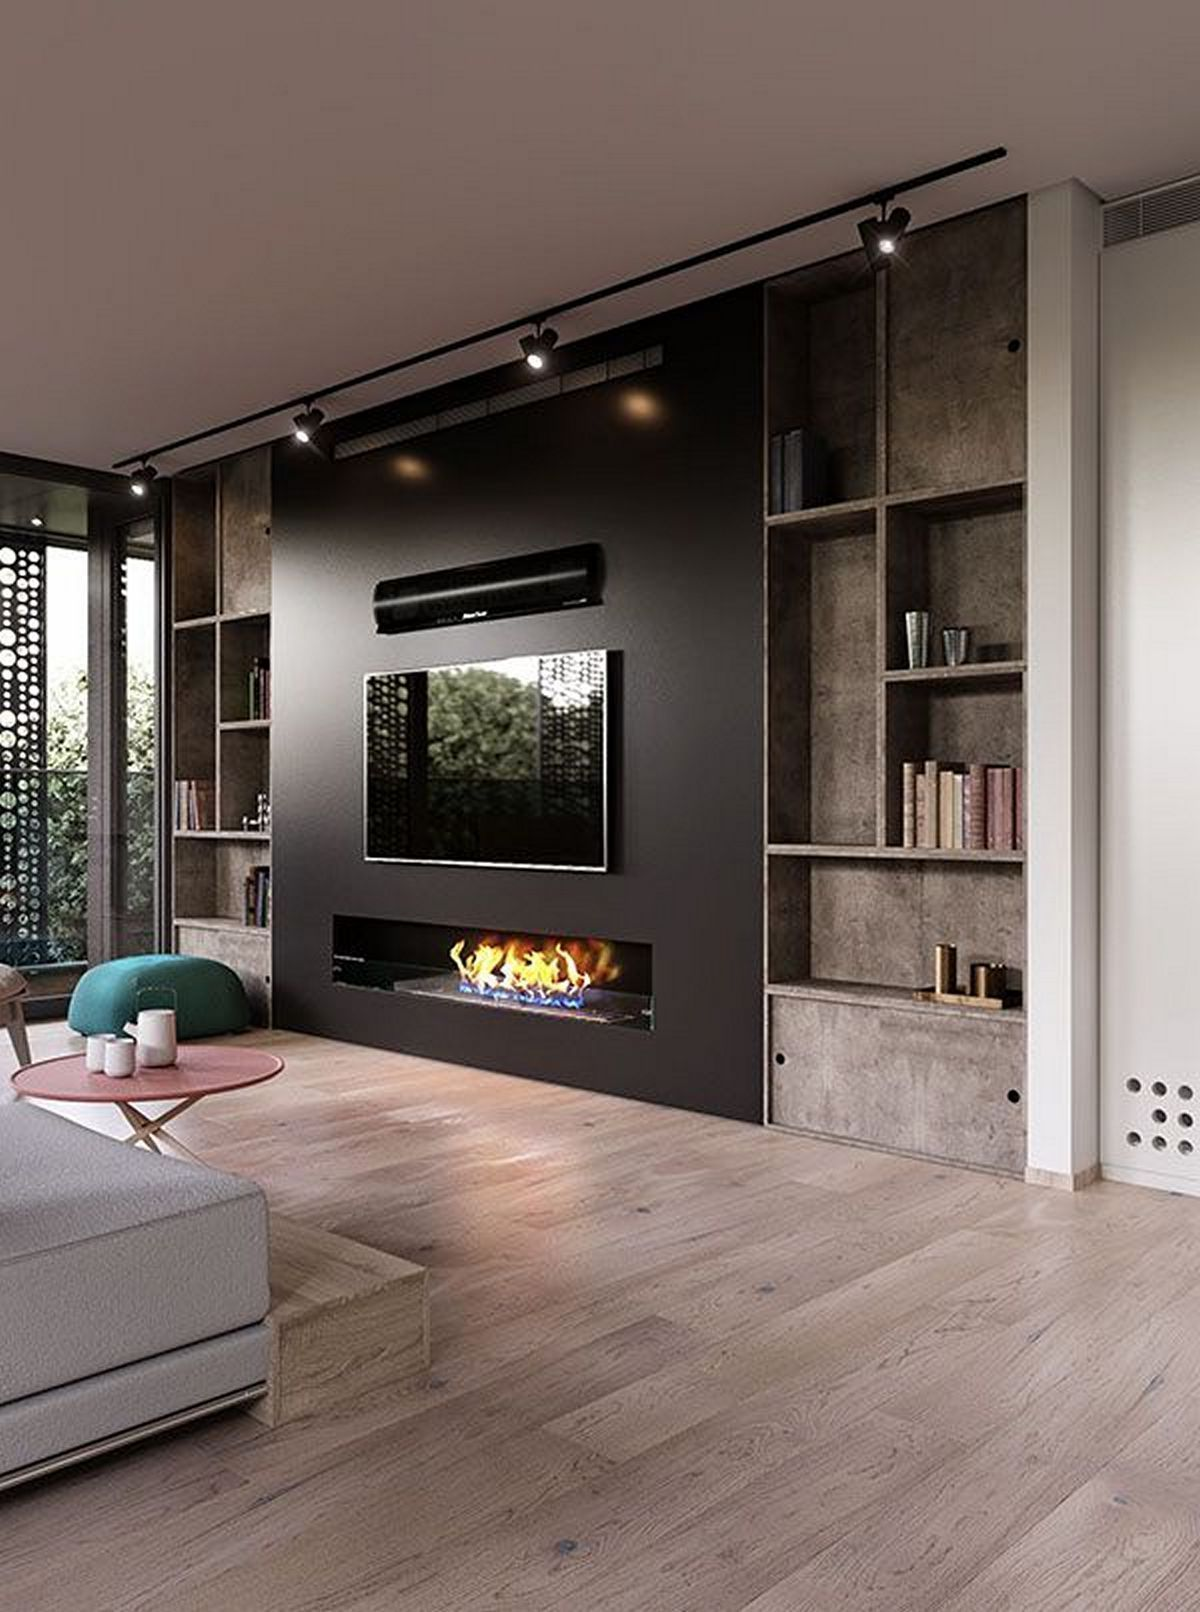 die perfekte tv wand ideen die will opfer nicht ihr look on incredible tv wall design ideas for living room decor layouts of tv models id=24345